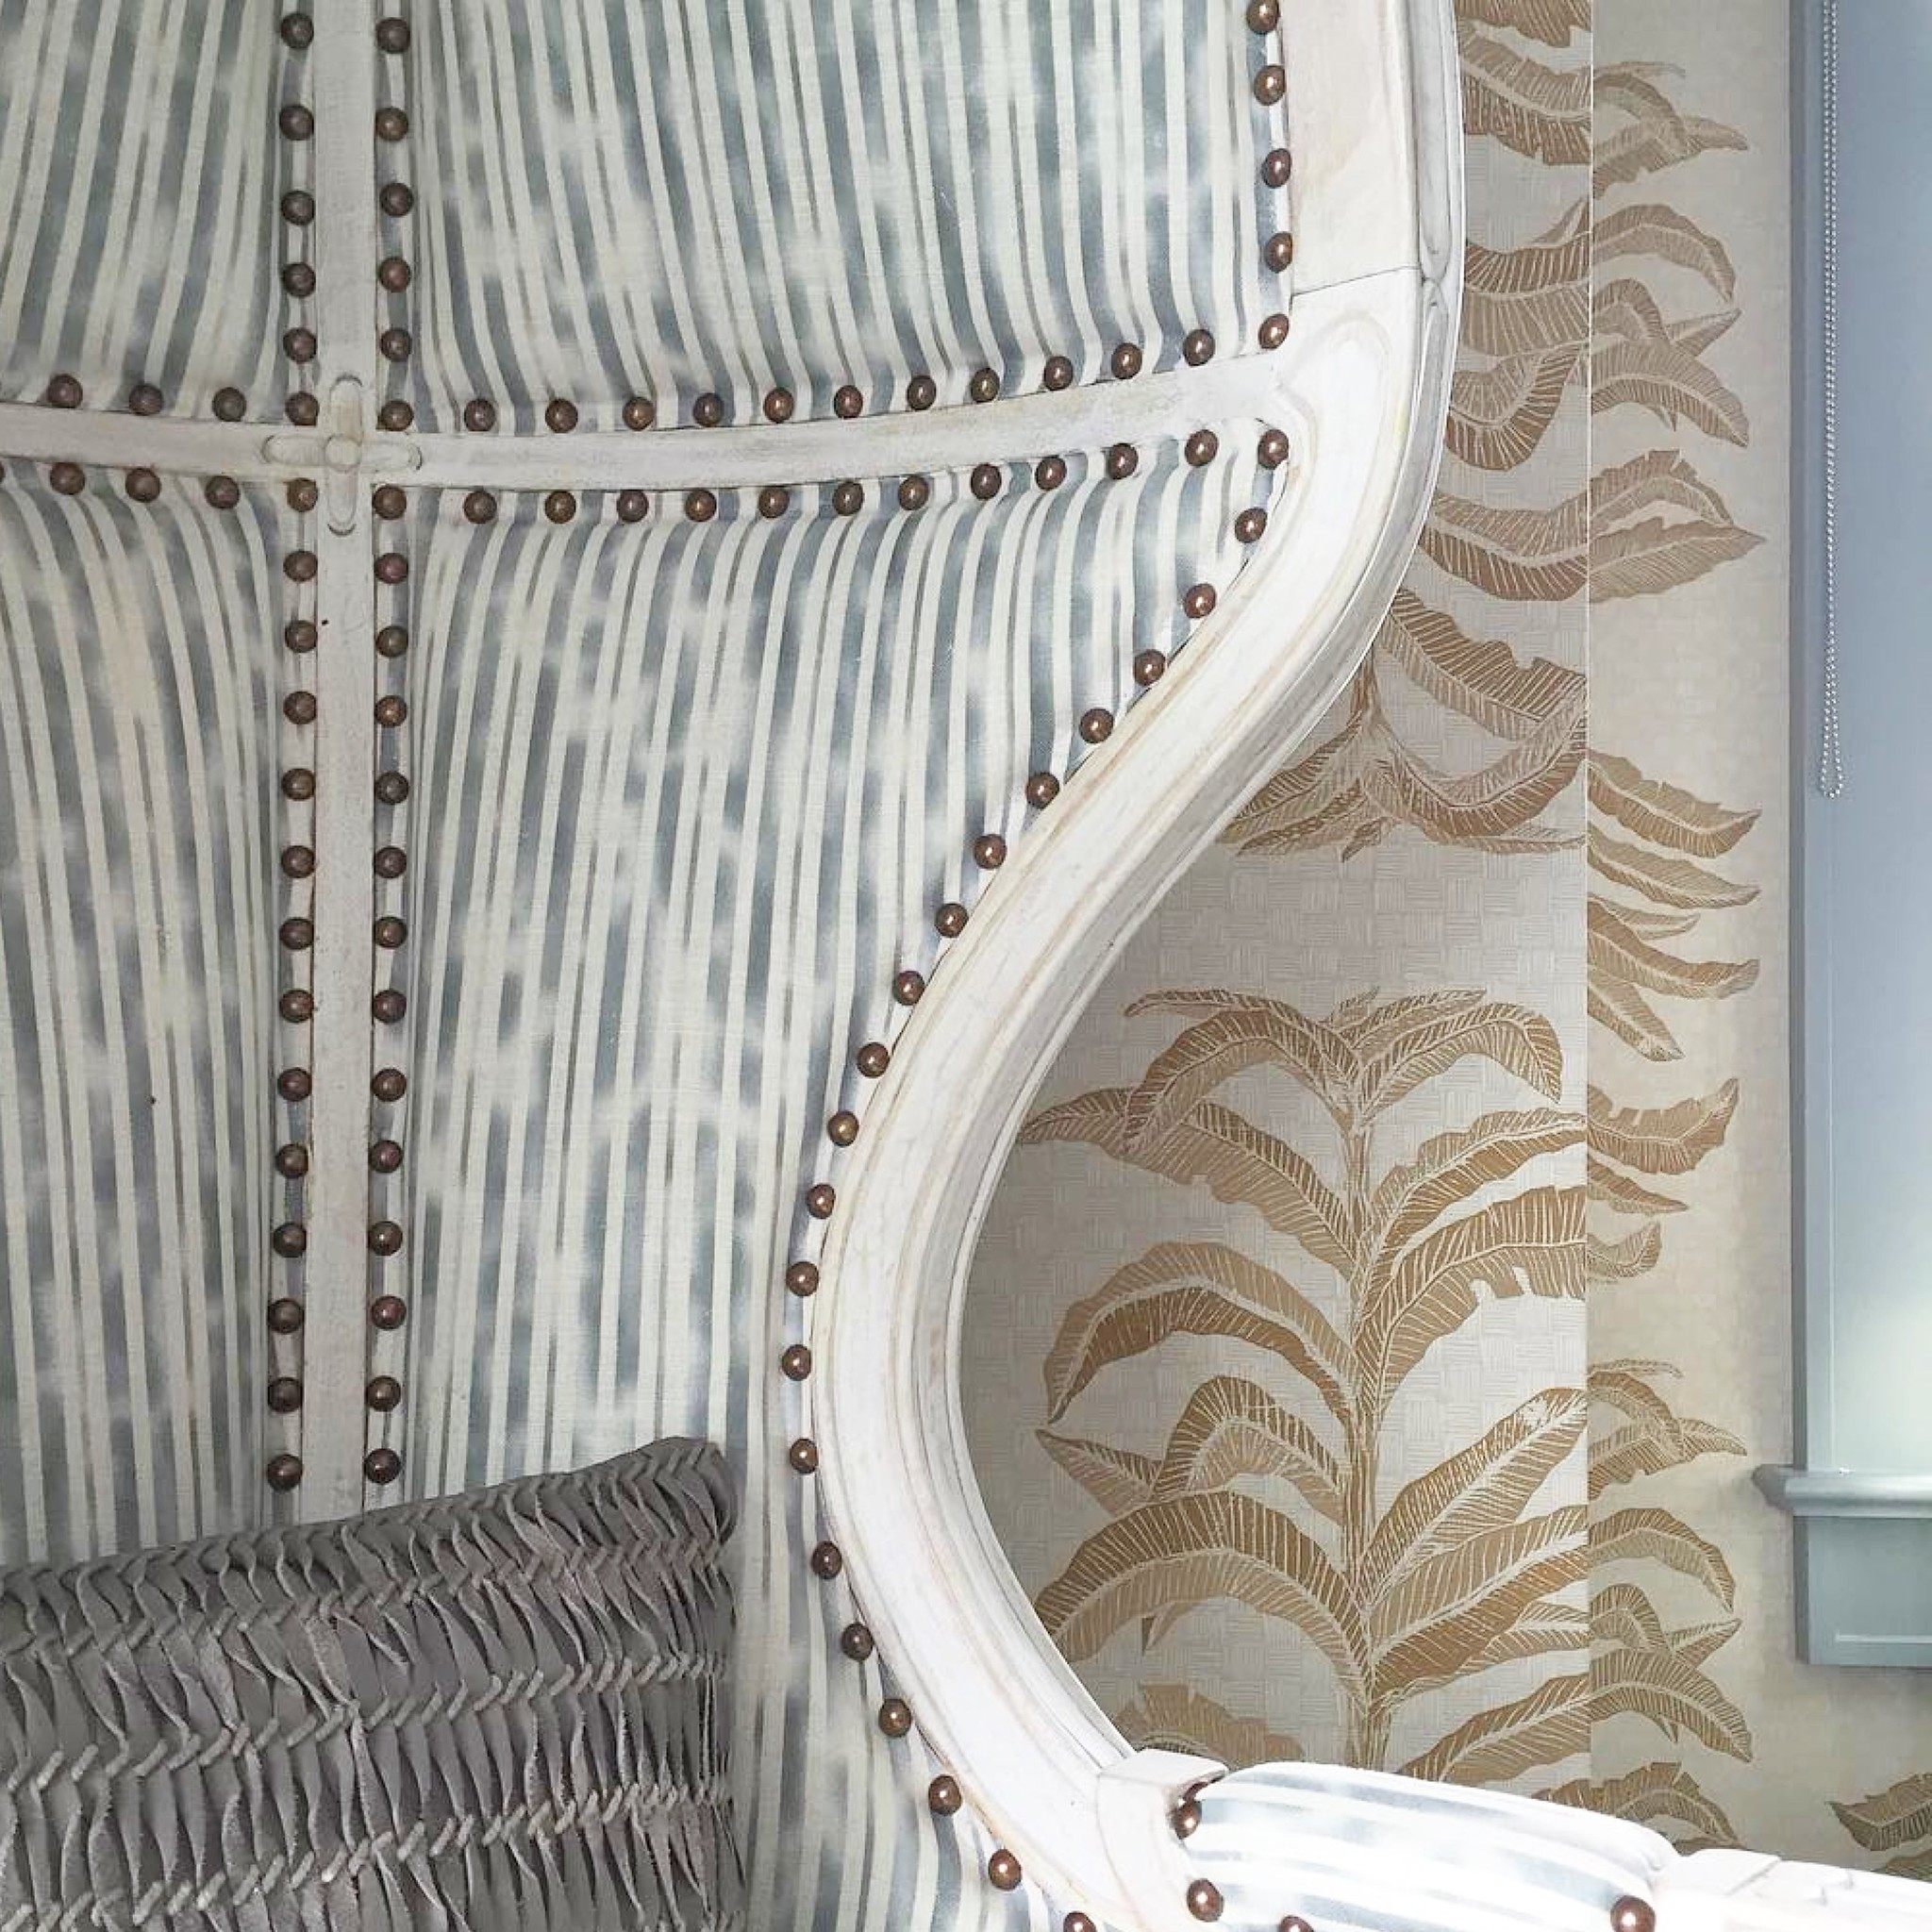 Banana Leaf Wallpaper in Gold, Interiors by Lucas Studio Inc., Photo by Karyn Millet